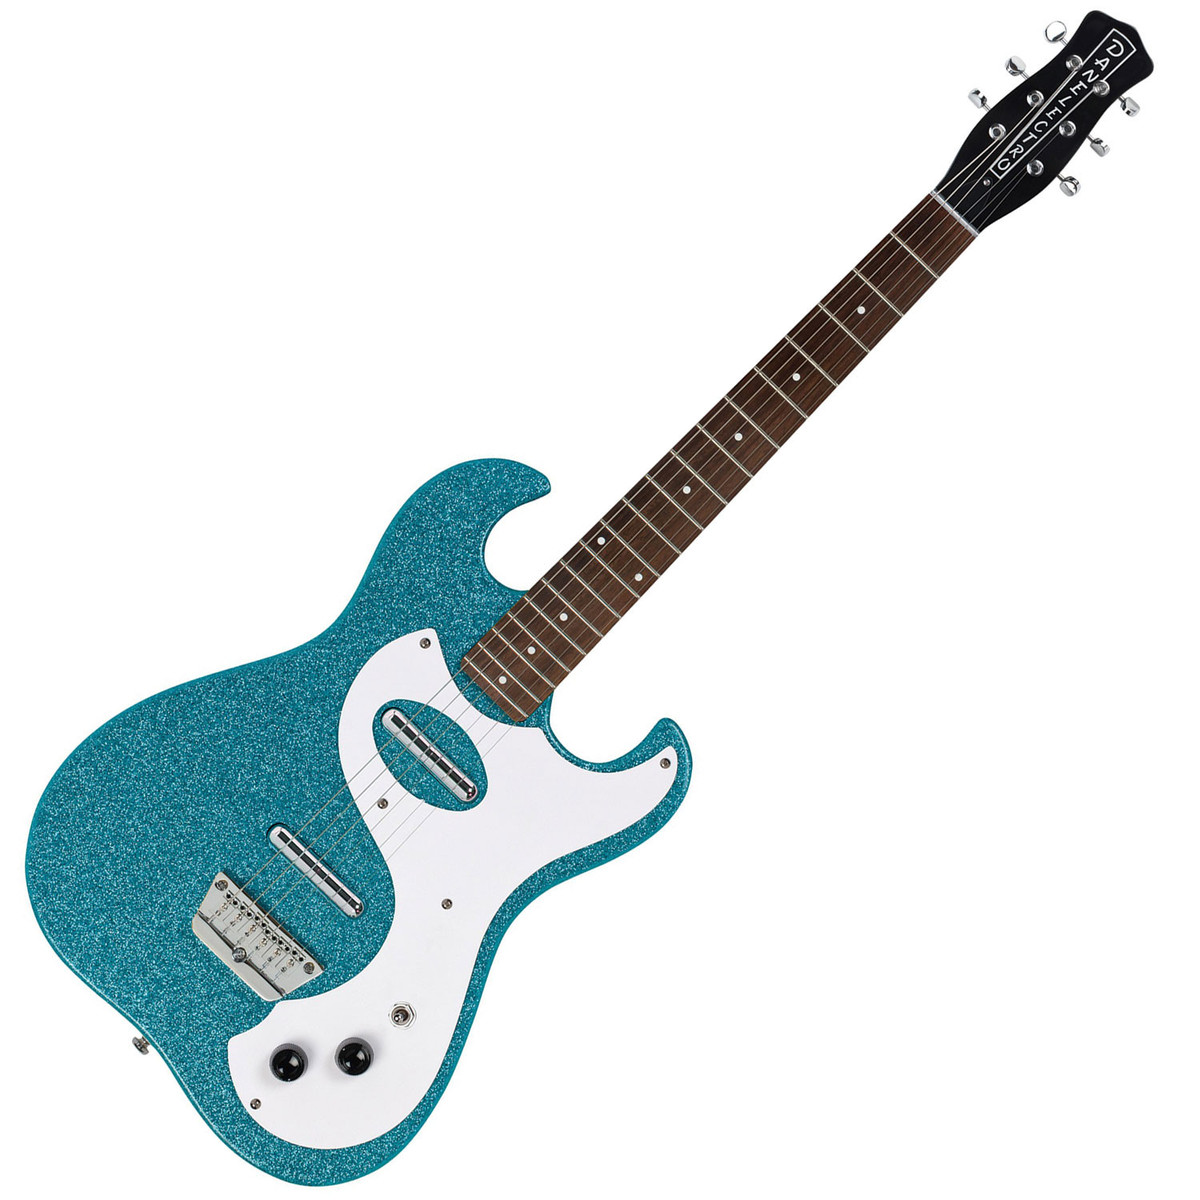 disc danelectro 63 double cutaway electric guitar turquoise metal gear4music. Black Bedroom Furniture Sets. Home Design Ideas